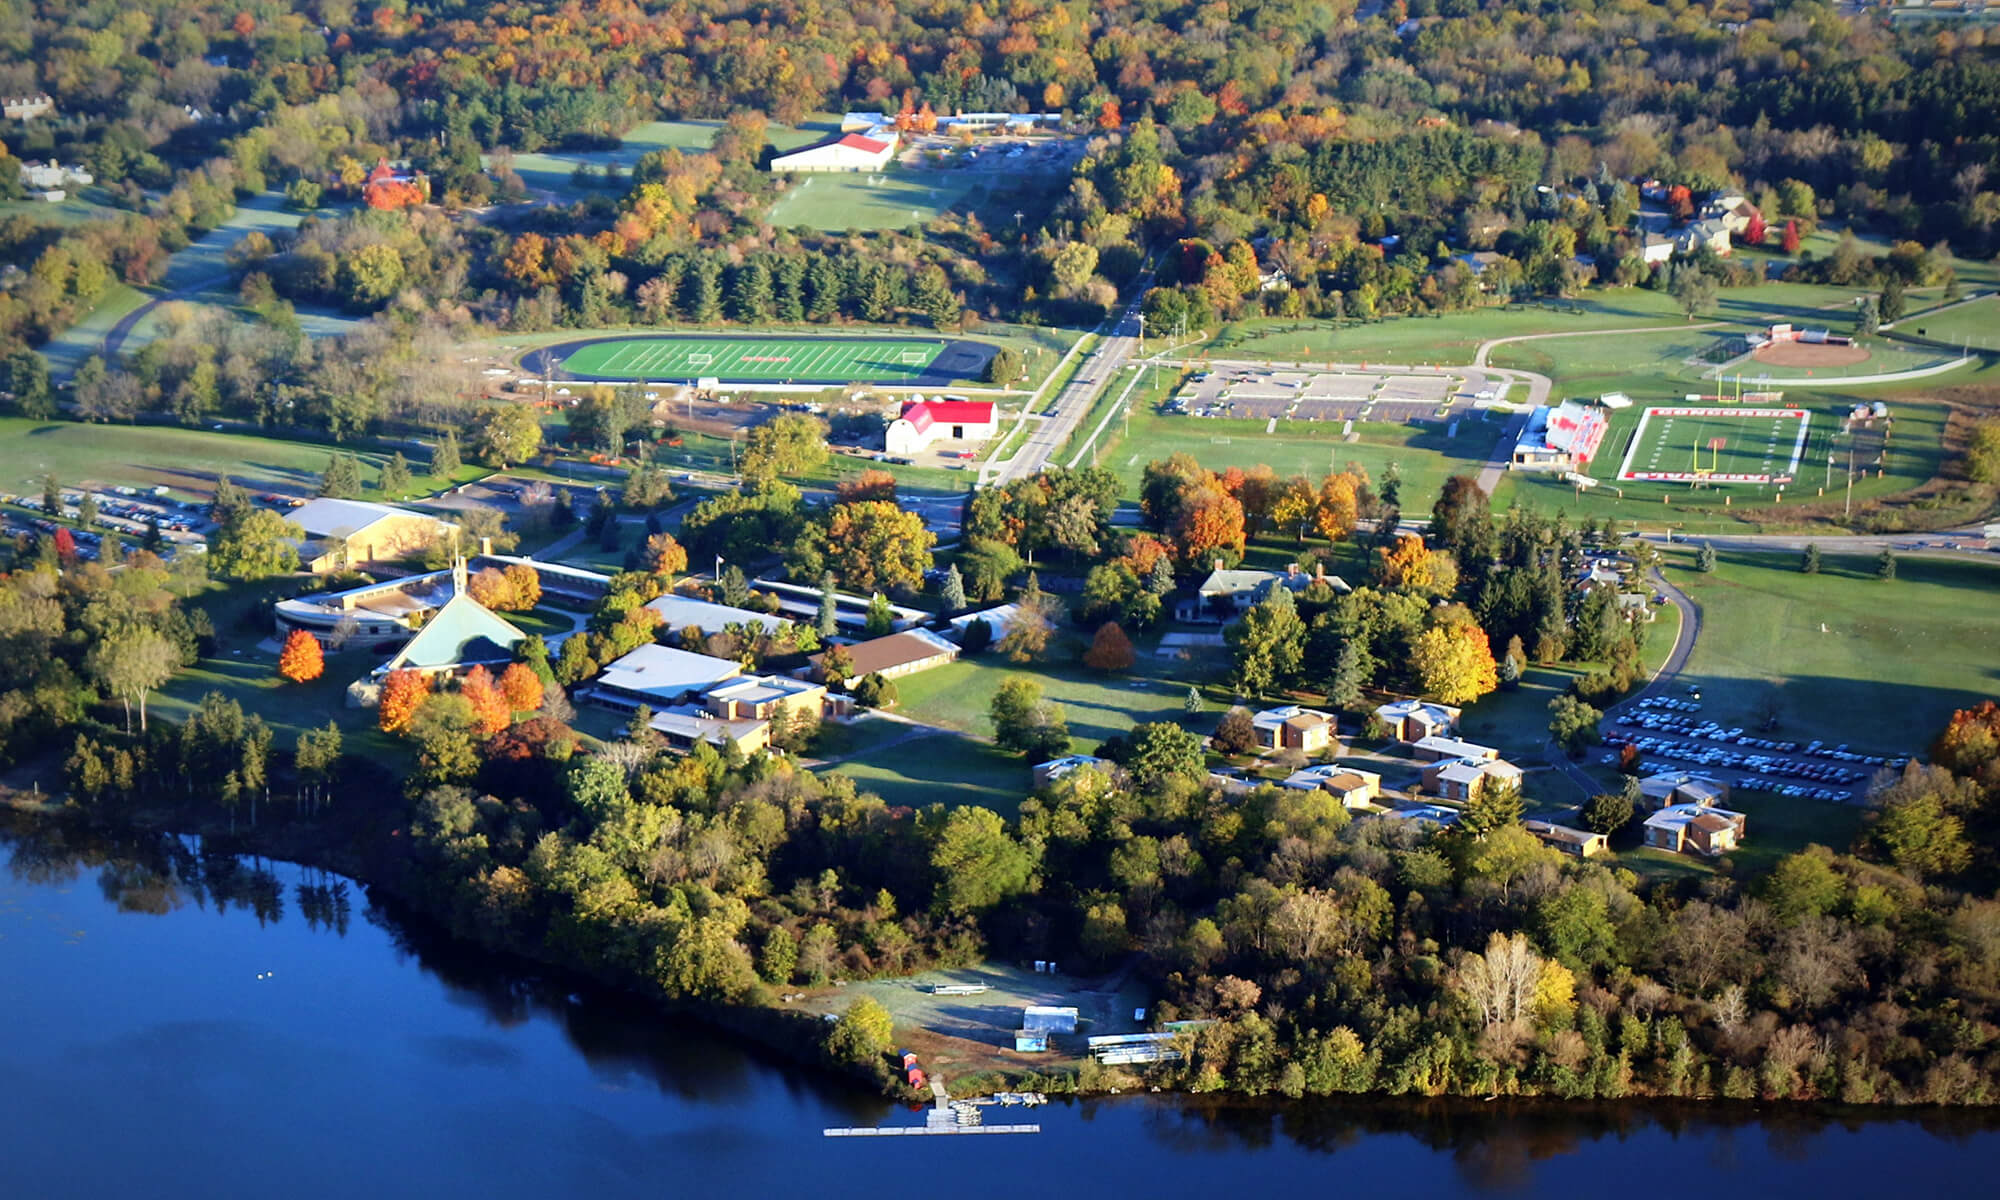 Top 12 scenic spots on CUAA's campus